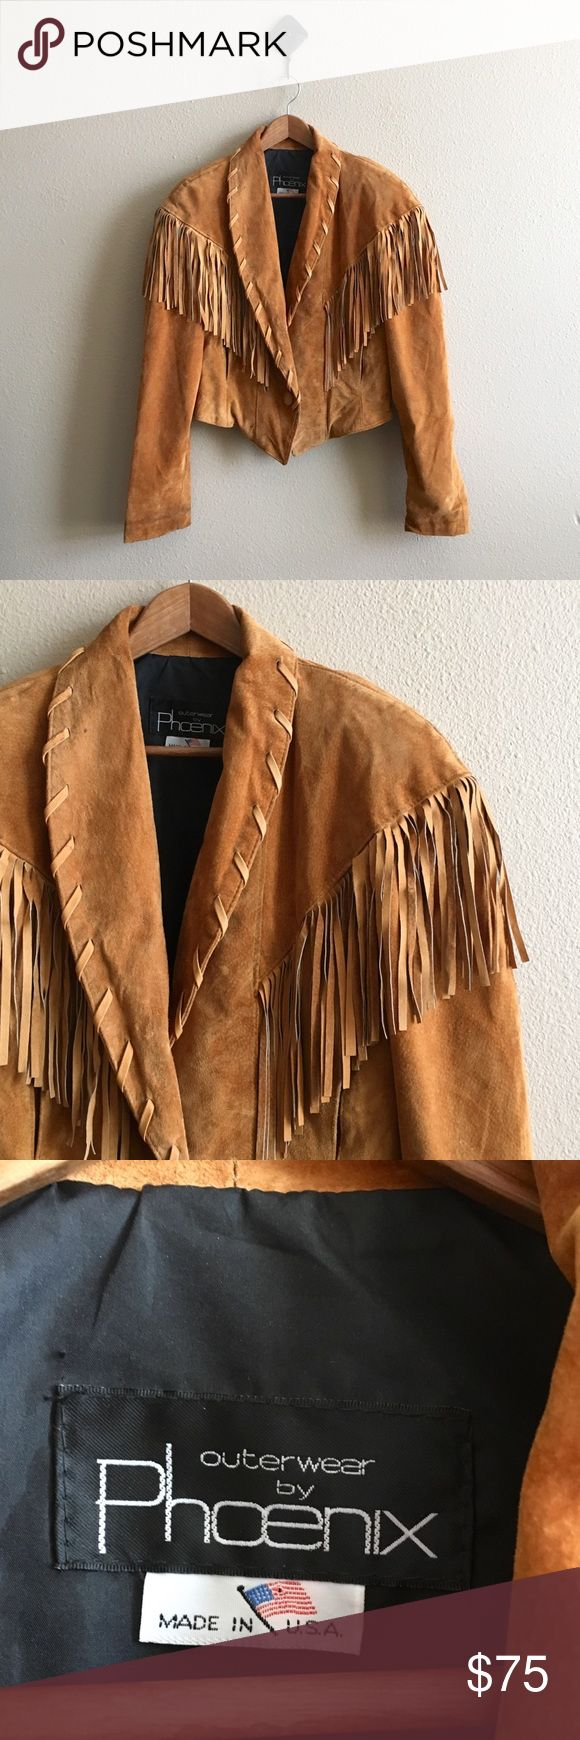 '80s / Western Fringe Leather Jacket Fringe suede jacket. Fits cropped, has shoulder pads. Good vintage condition.  BRAND: Phoenix MATERIAL: suede / polyester YEAR/ERA: 80s LABEL SIZE: L BEST FIT: M  MEASUREMENTS: Chest 19 in Length 21 in  → Style inspiration: 90210 ☒ I do not model or trade, sorry! ❁ Check out my closet for more vintage! Vintage Jackets & Coats